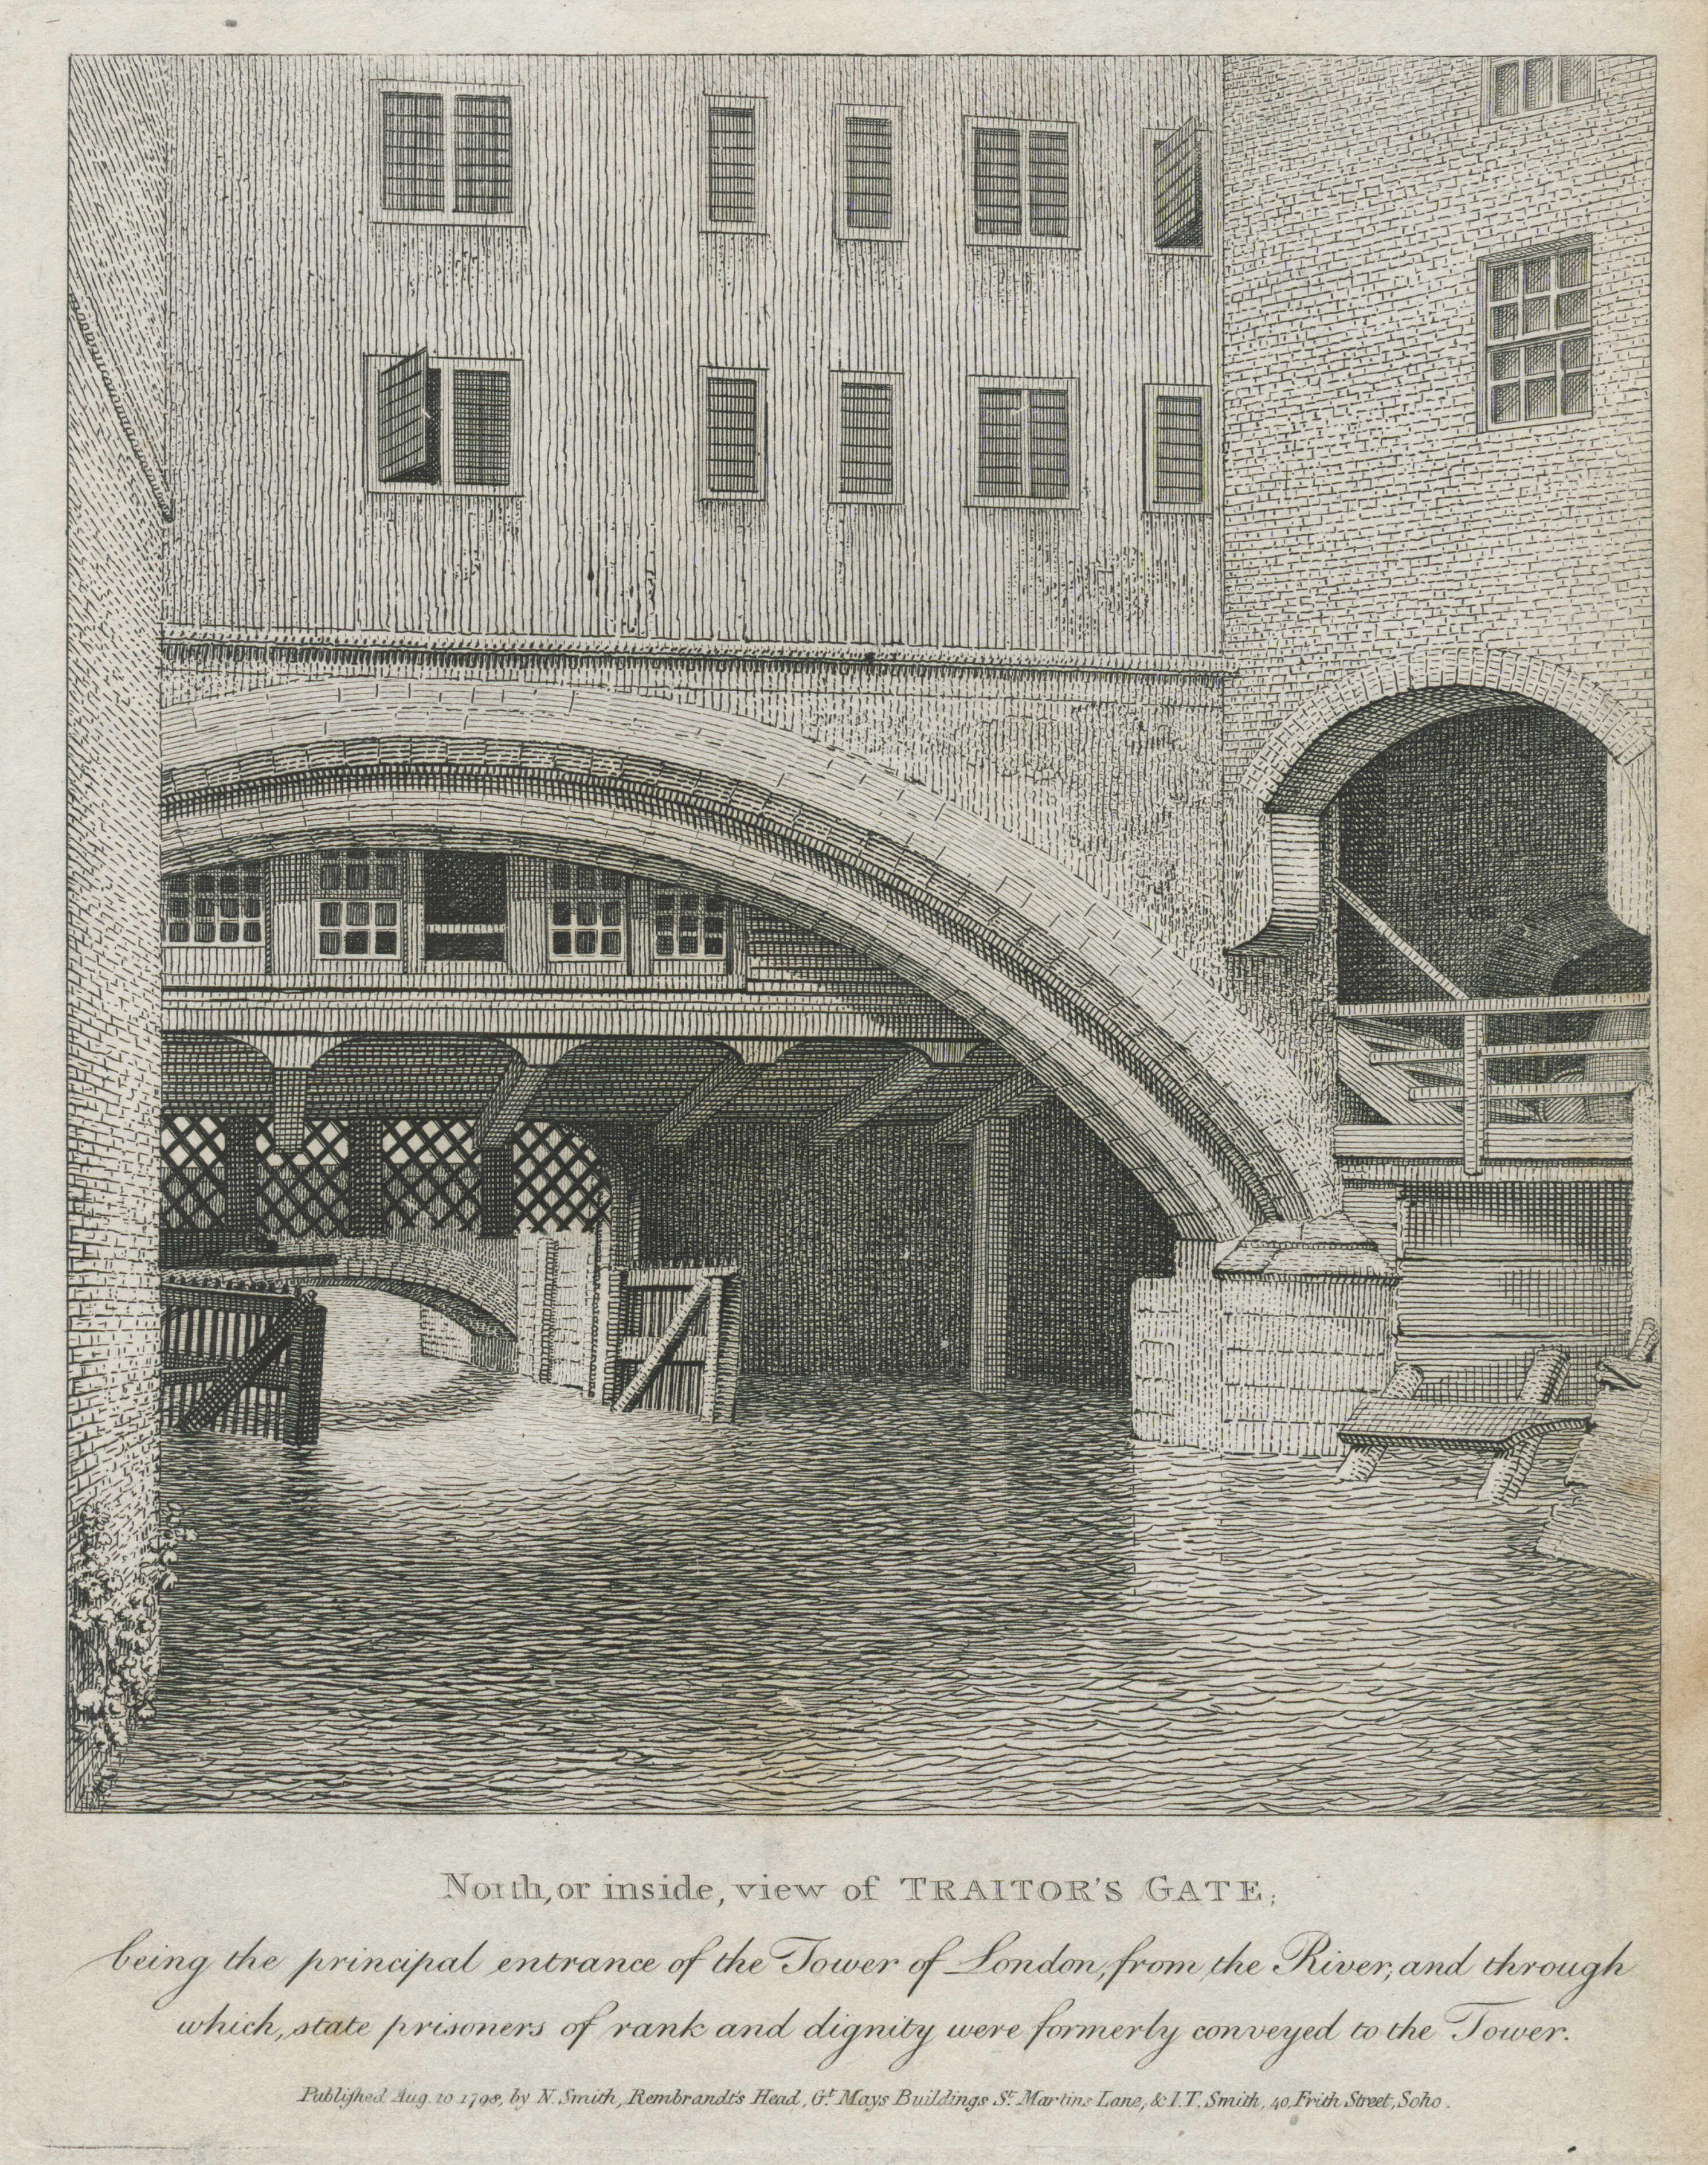 67-north-or-inside-view-of-traitors-gate